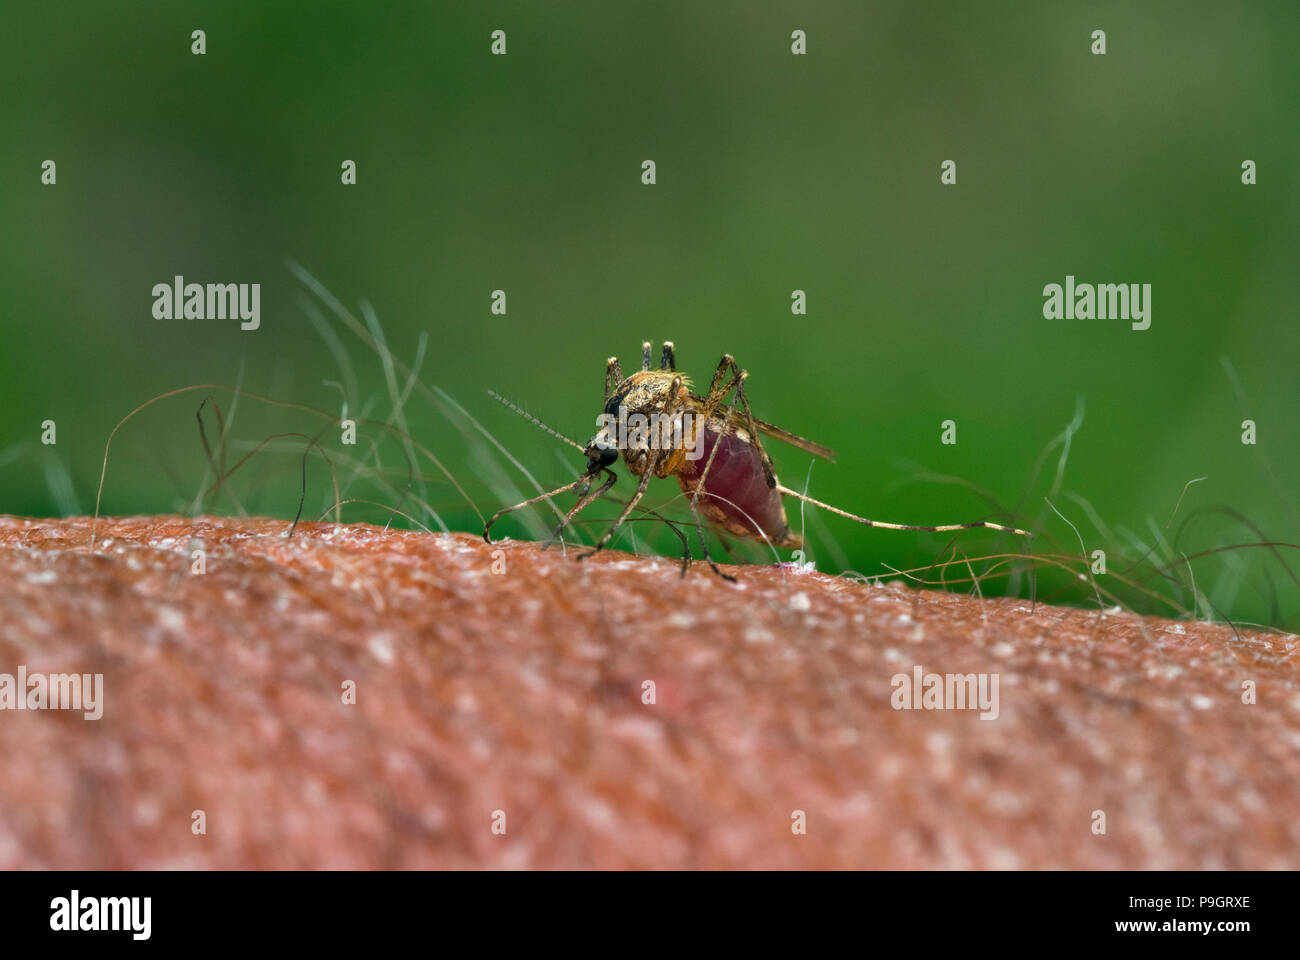 Mosquito Theobaldia annulata) sucking blood from human hand - Stock Image